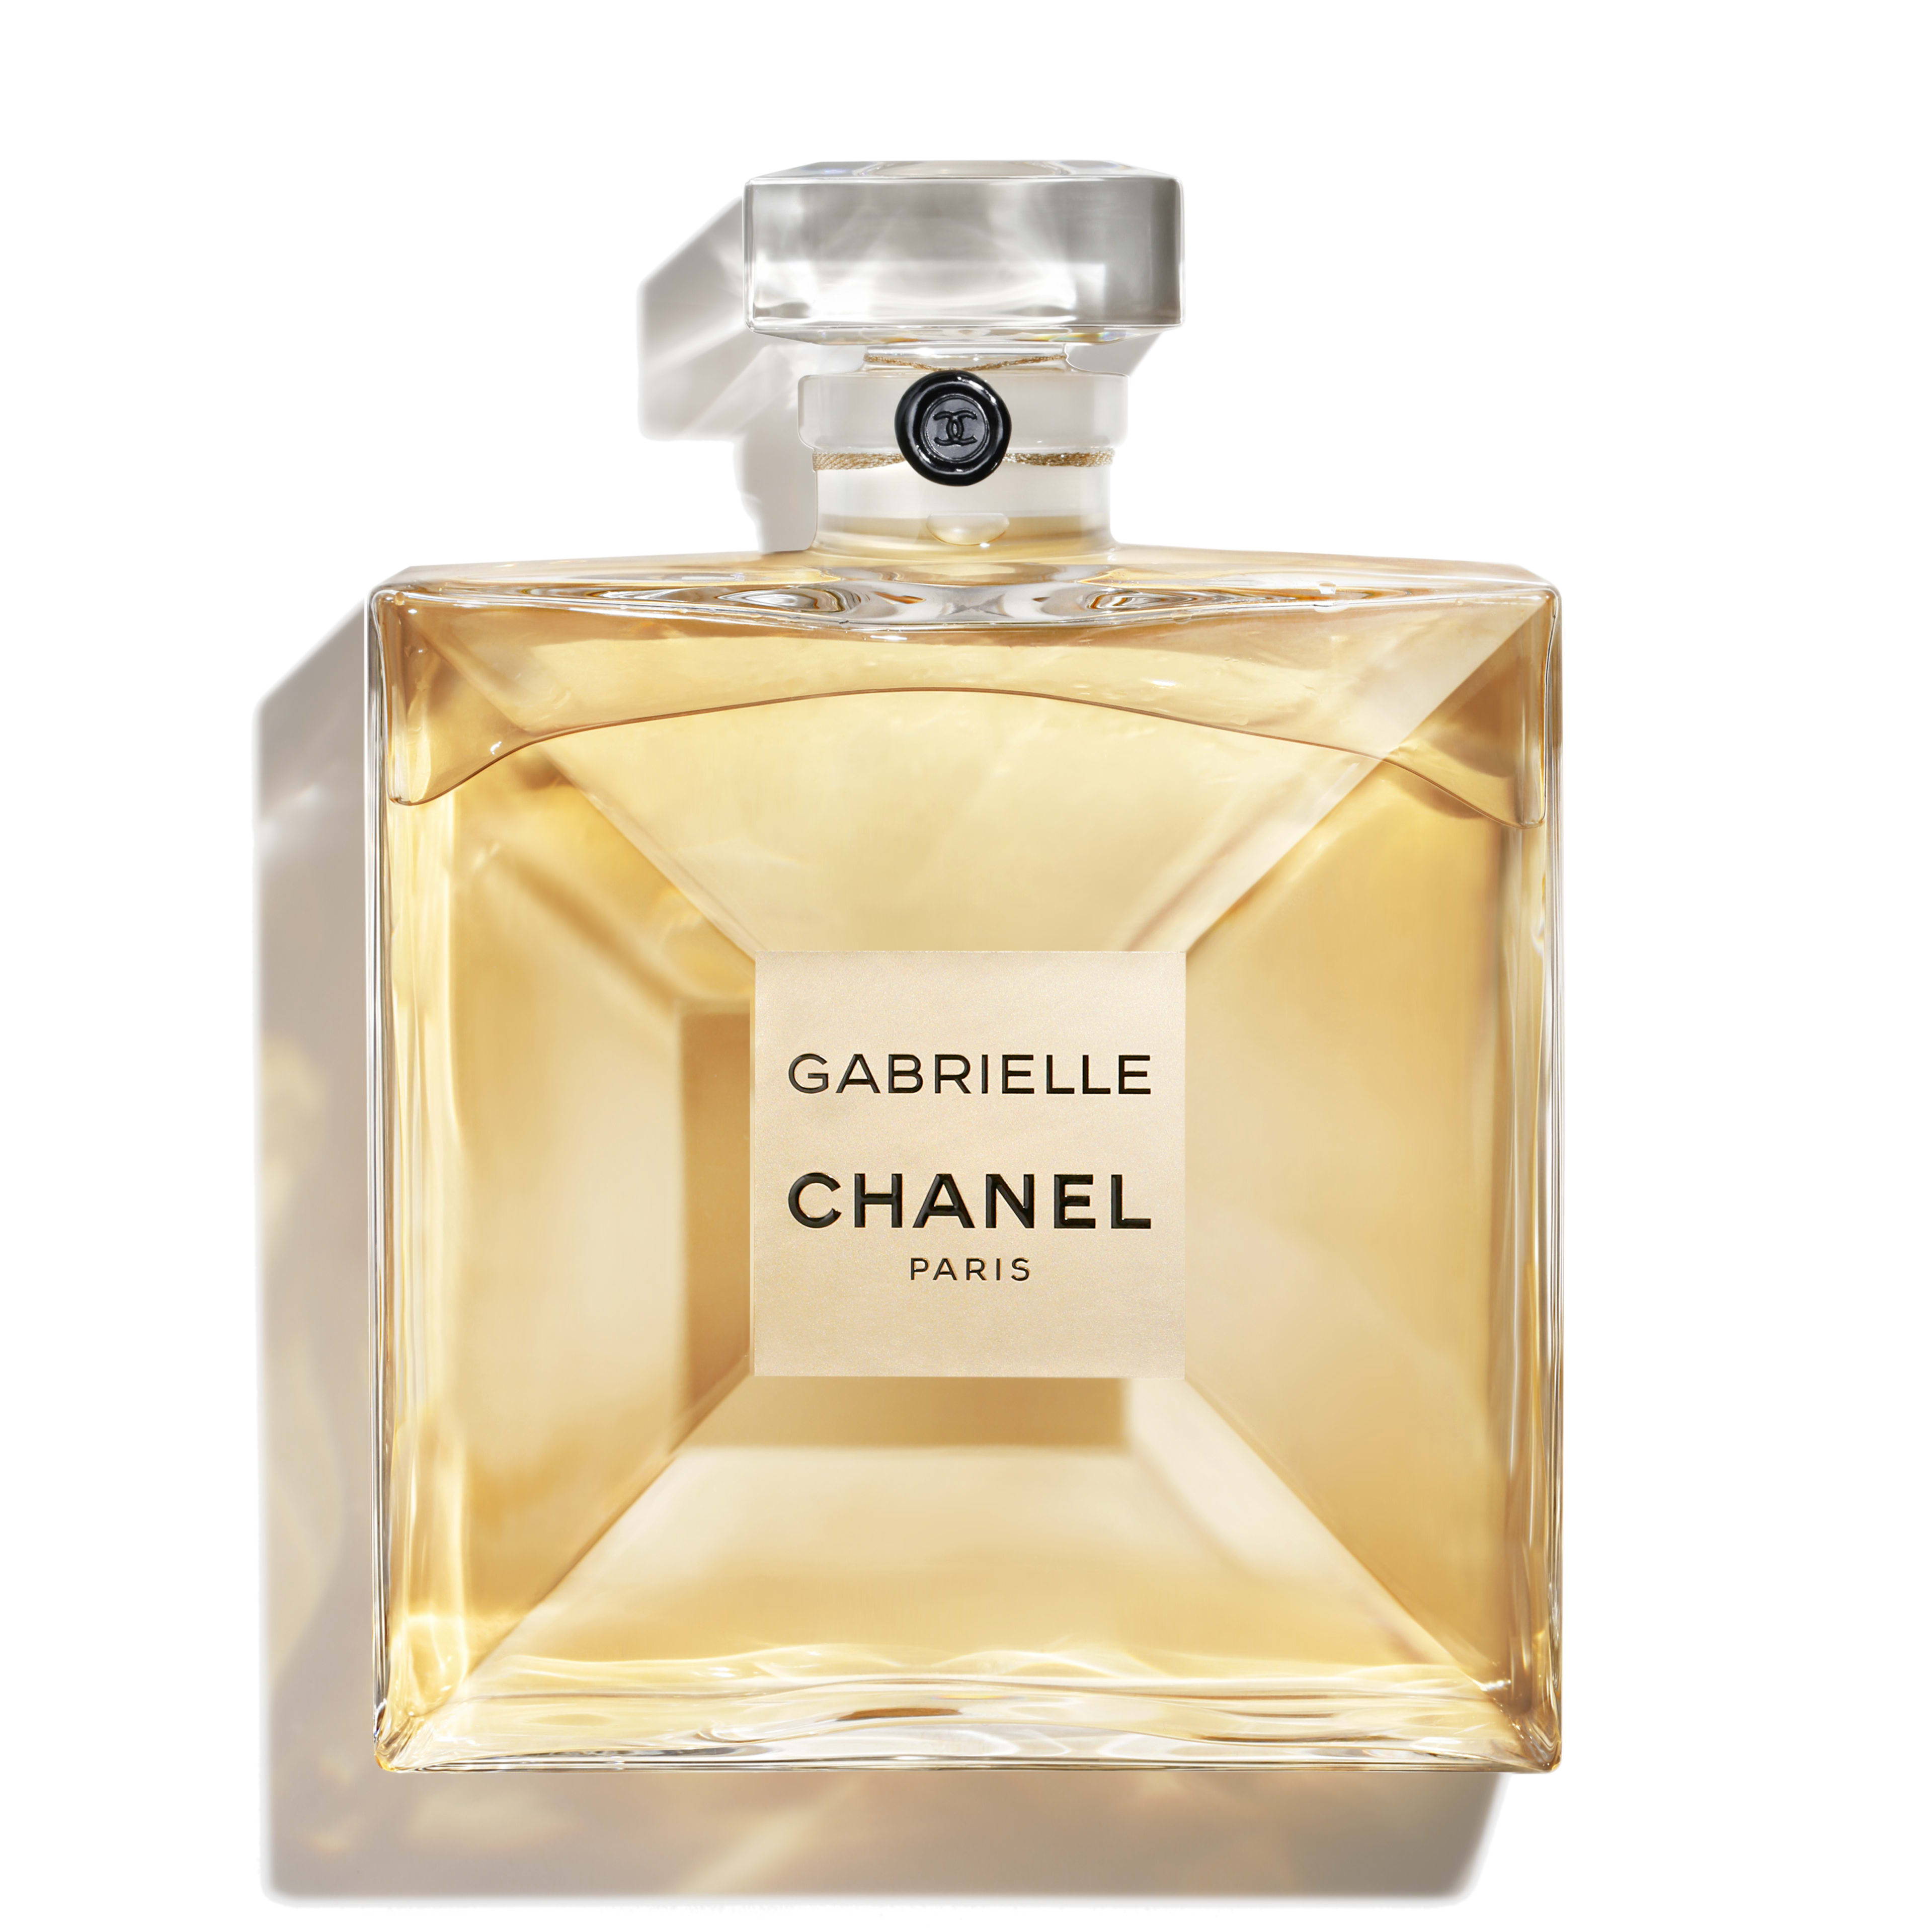 Gabrielle perfume by Chanel